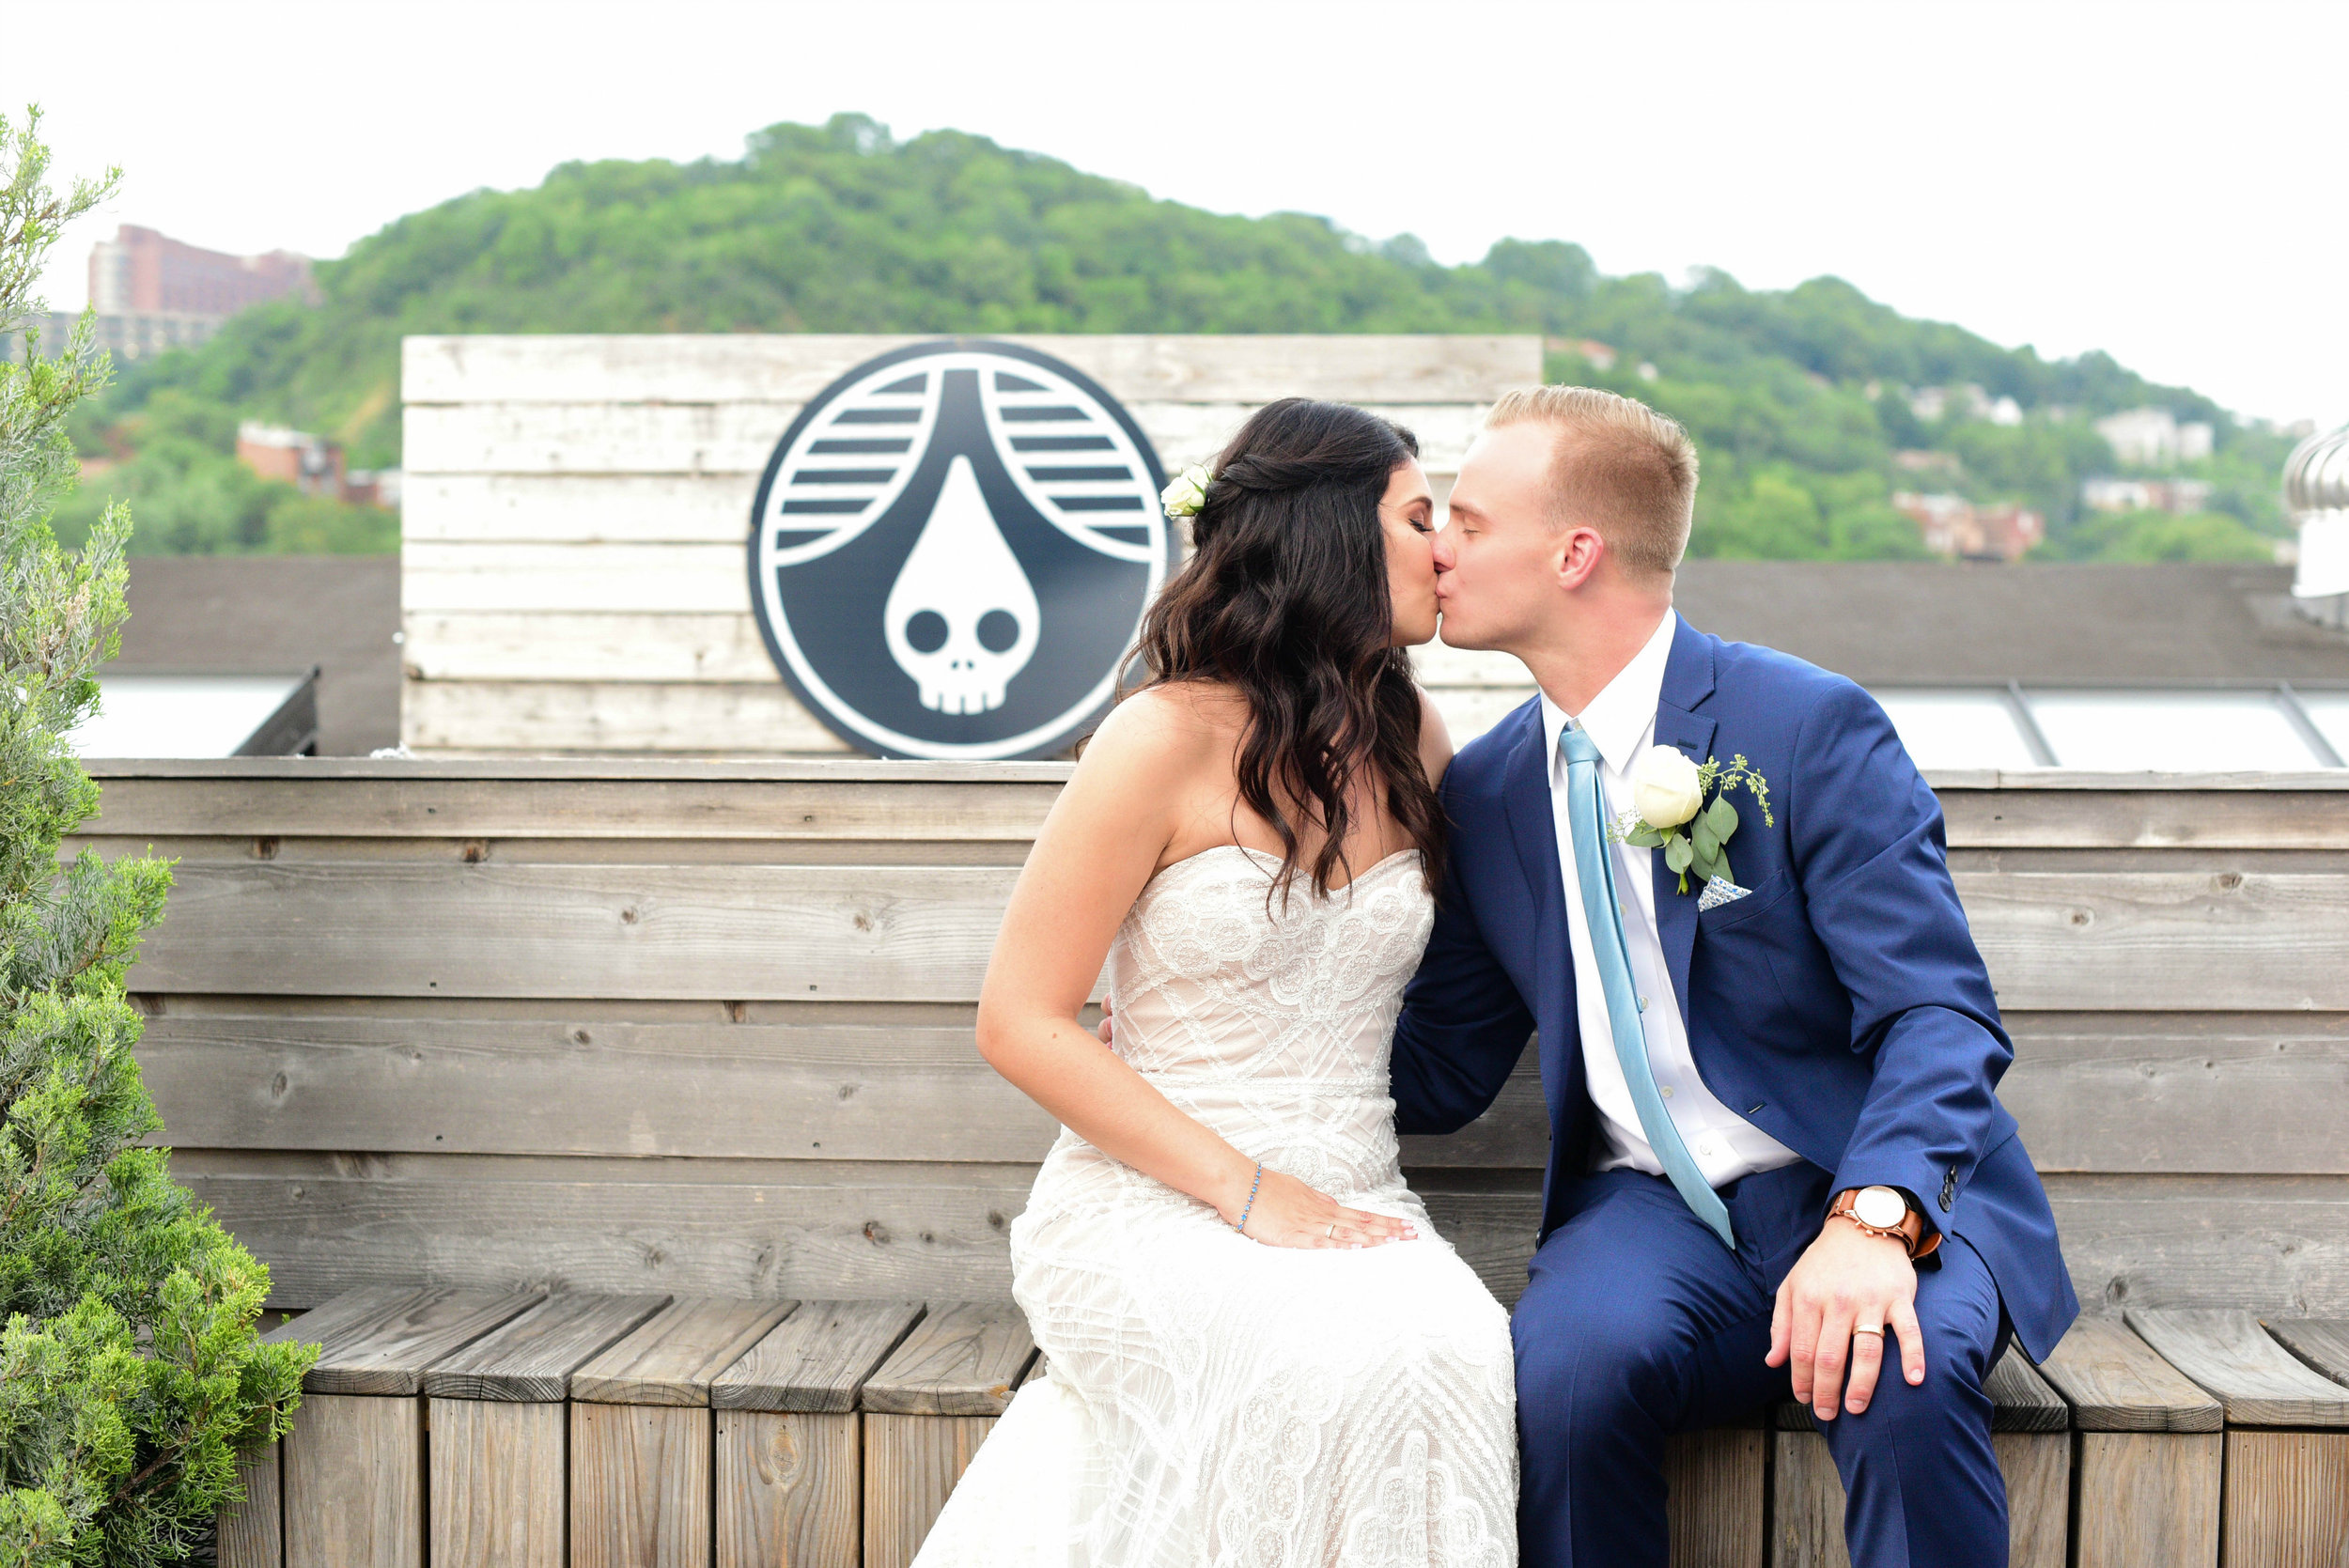 SUSIE MARIE PHOTOGRAPHY | RHINEGEIST WEDDING | BRIDAL GOWN | REAL CINCINNAIT WEDDING | RHINEGEIST BREWERY | NAVY BLUE SUIT | CINCINNATI WEDDING COORDINATOR | DAY OF COORDINATION CINCINNATI